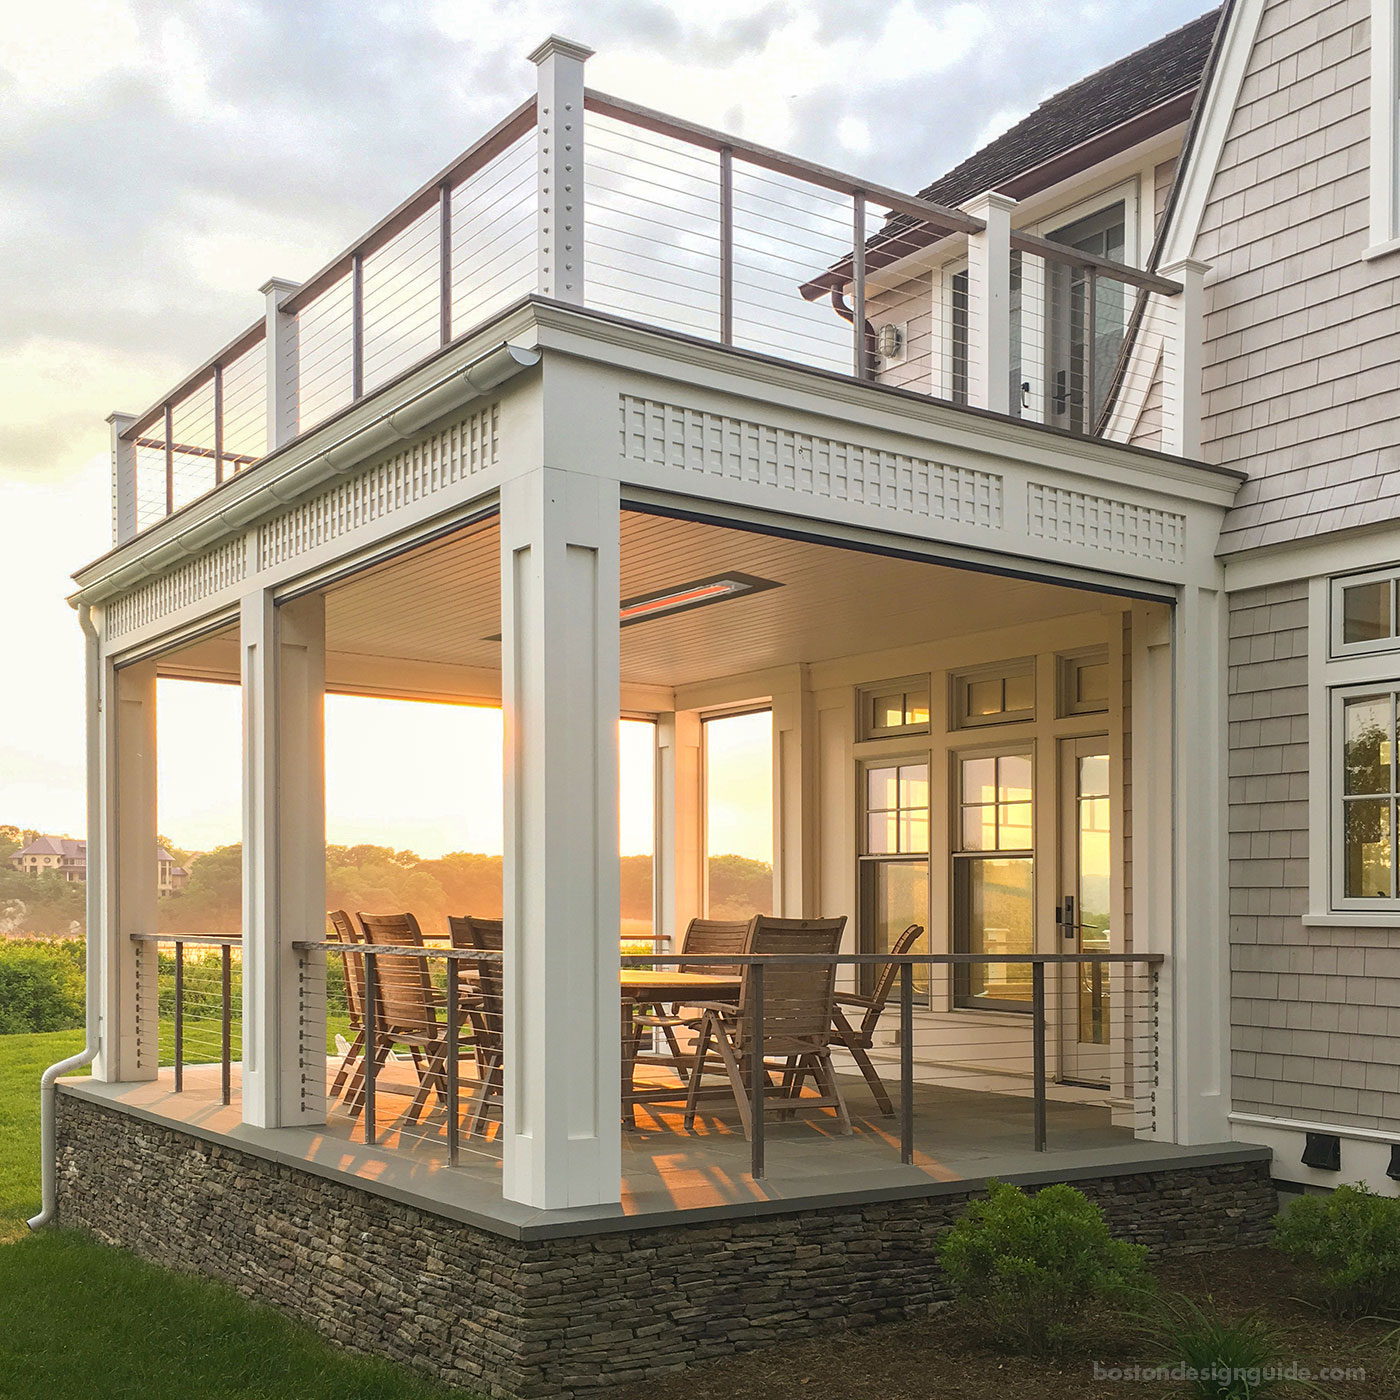 Classic Newport porch with an integrated heater by WKP Construction